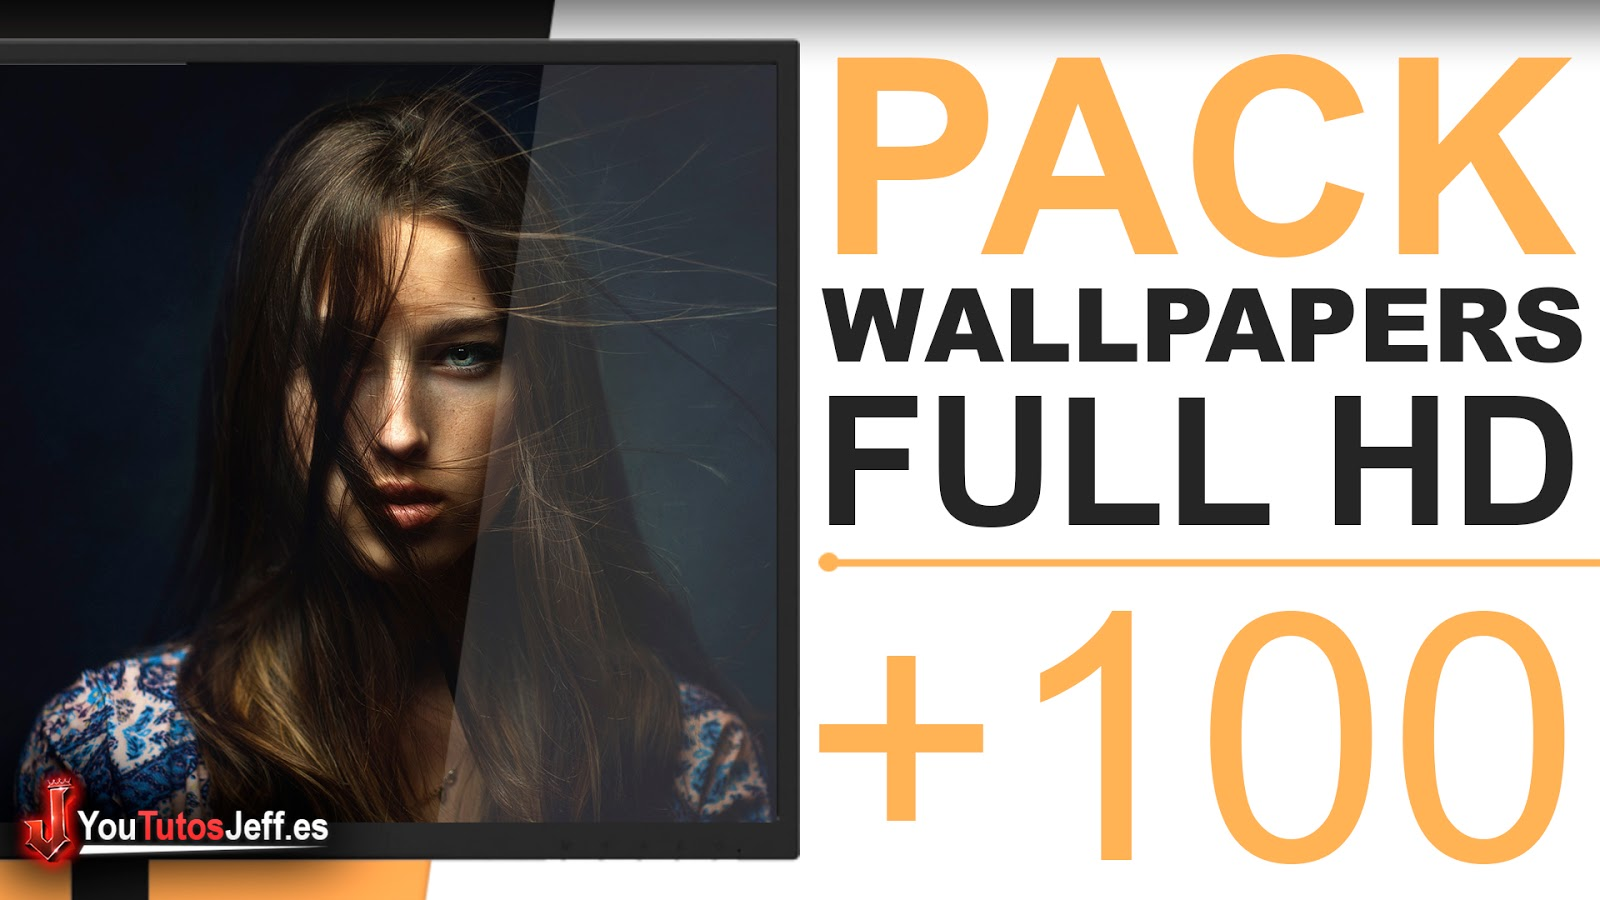 Pack Wallpapers FULL HD #10